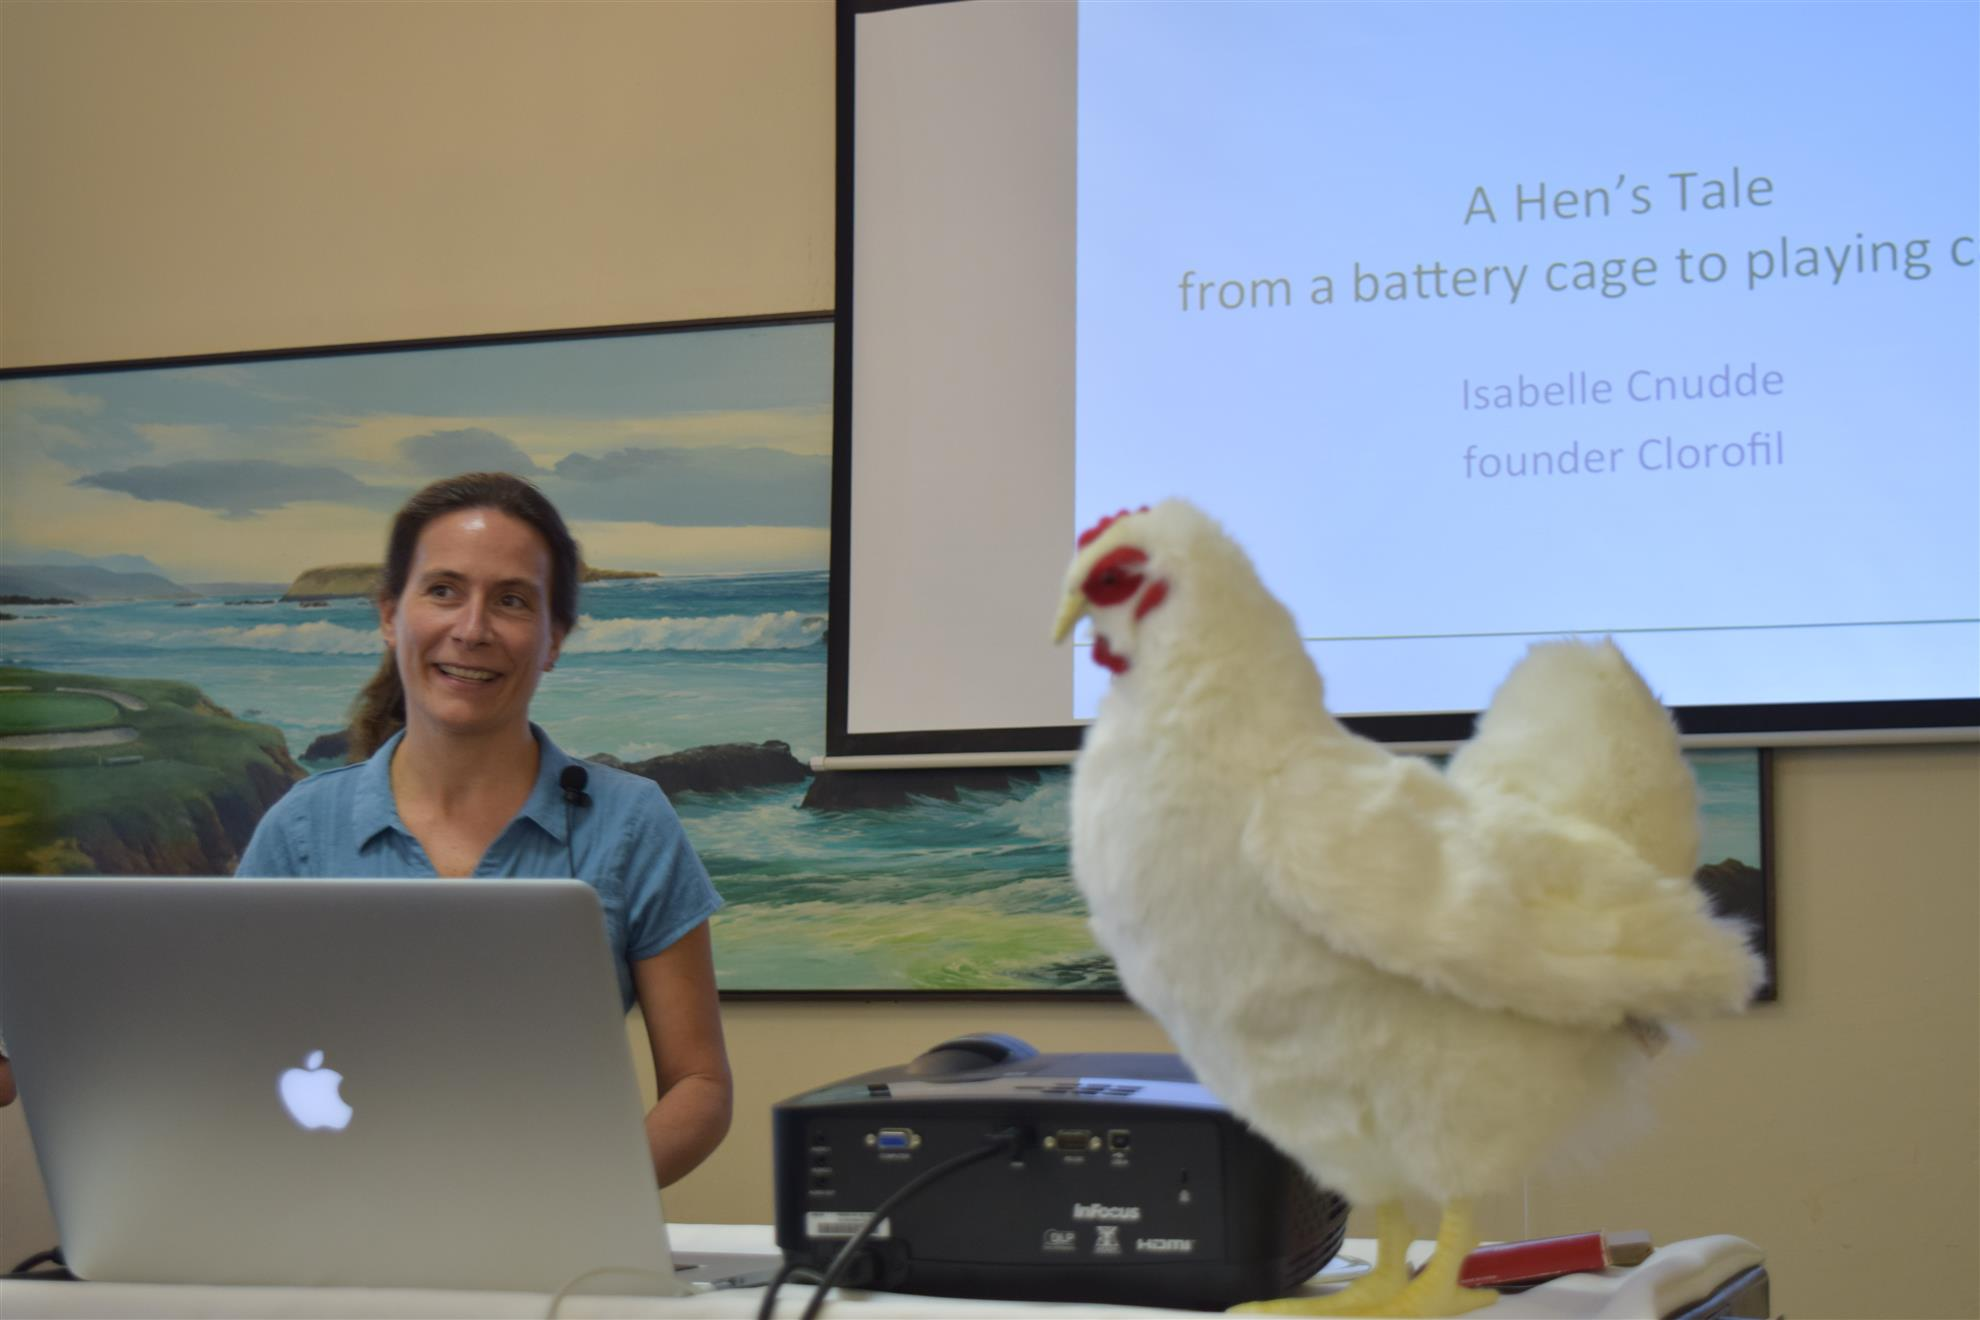 Isabelle Cnudde went from tech to hen rescues in Silicon Valley